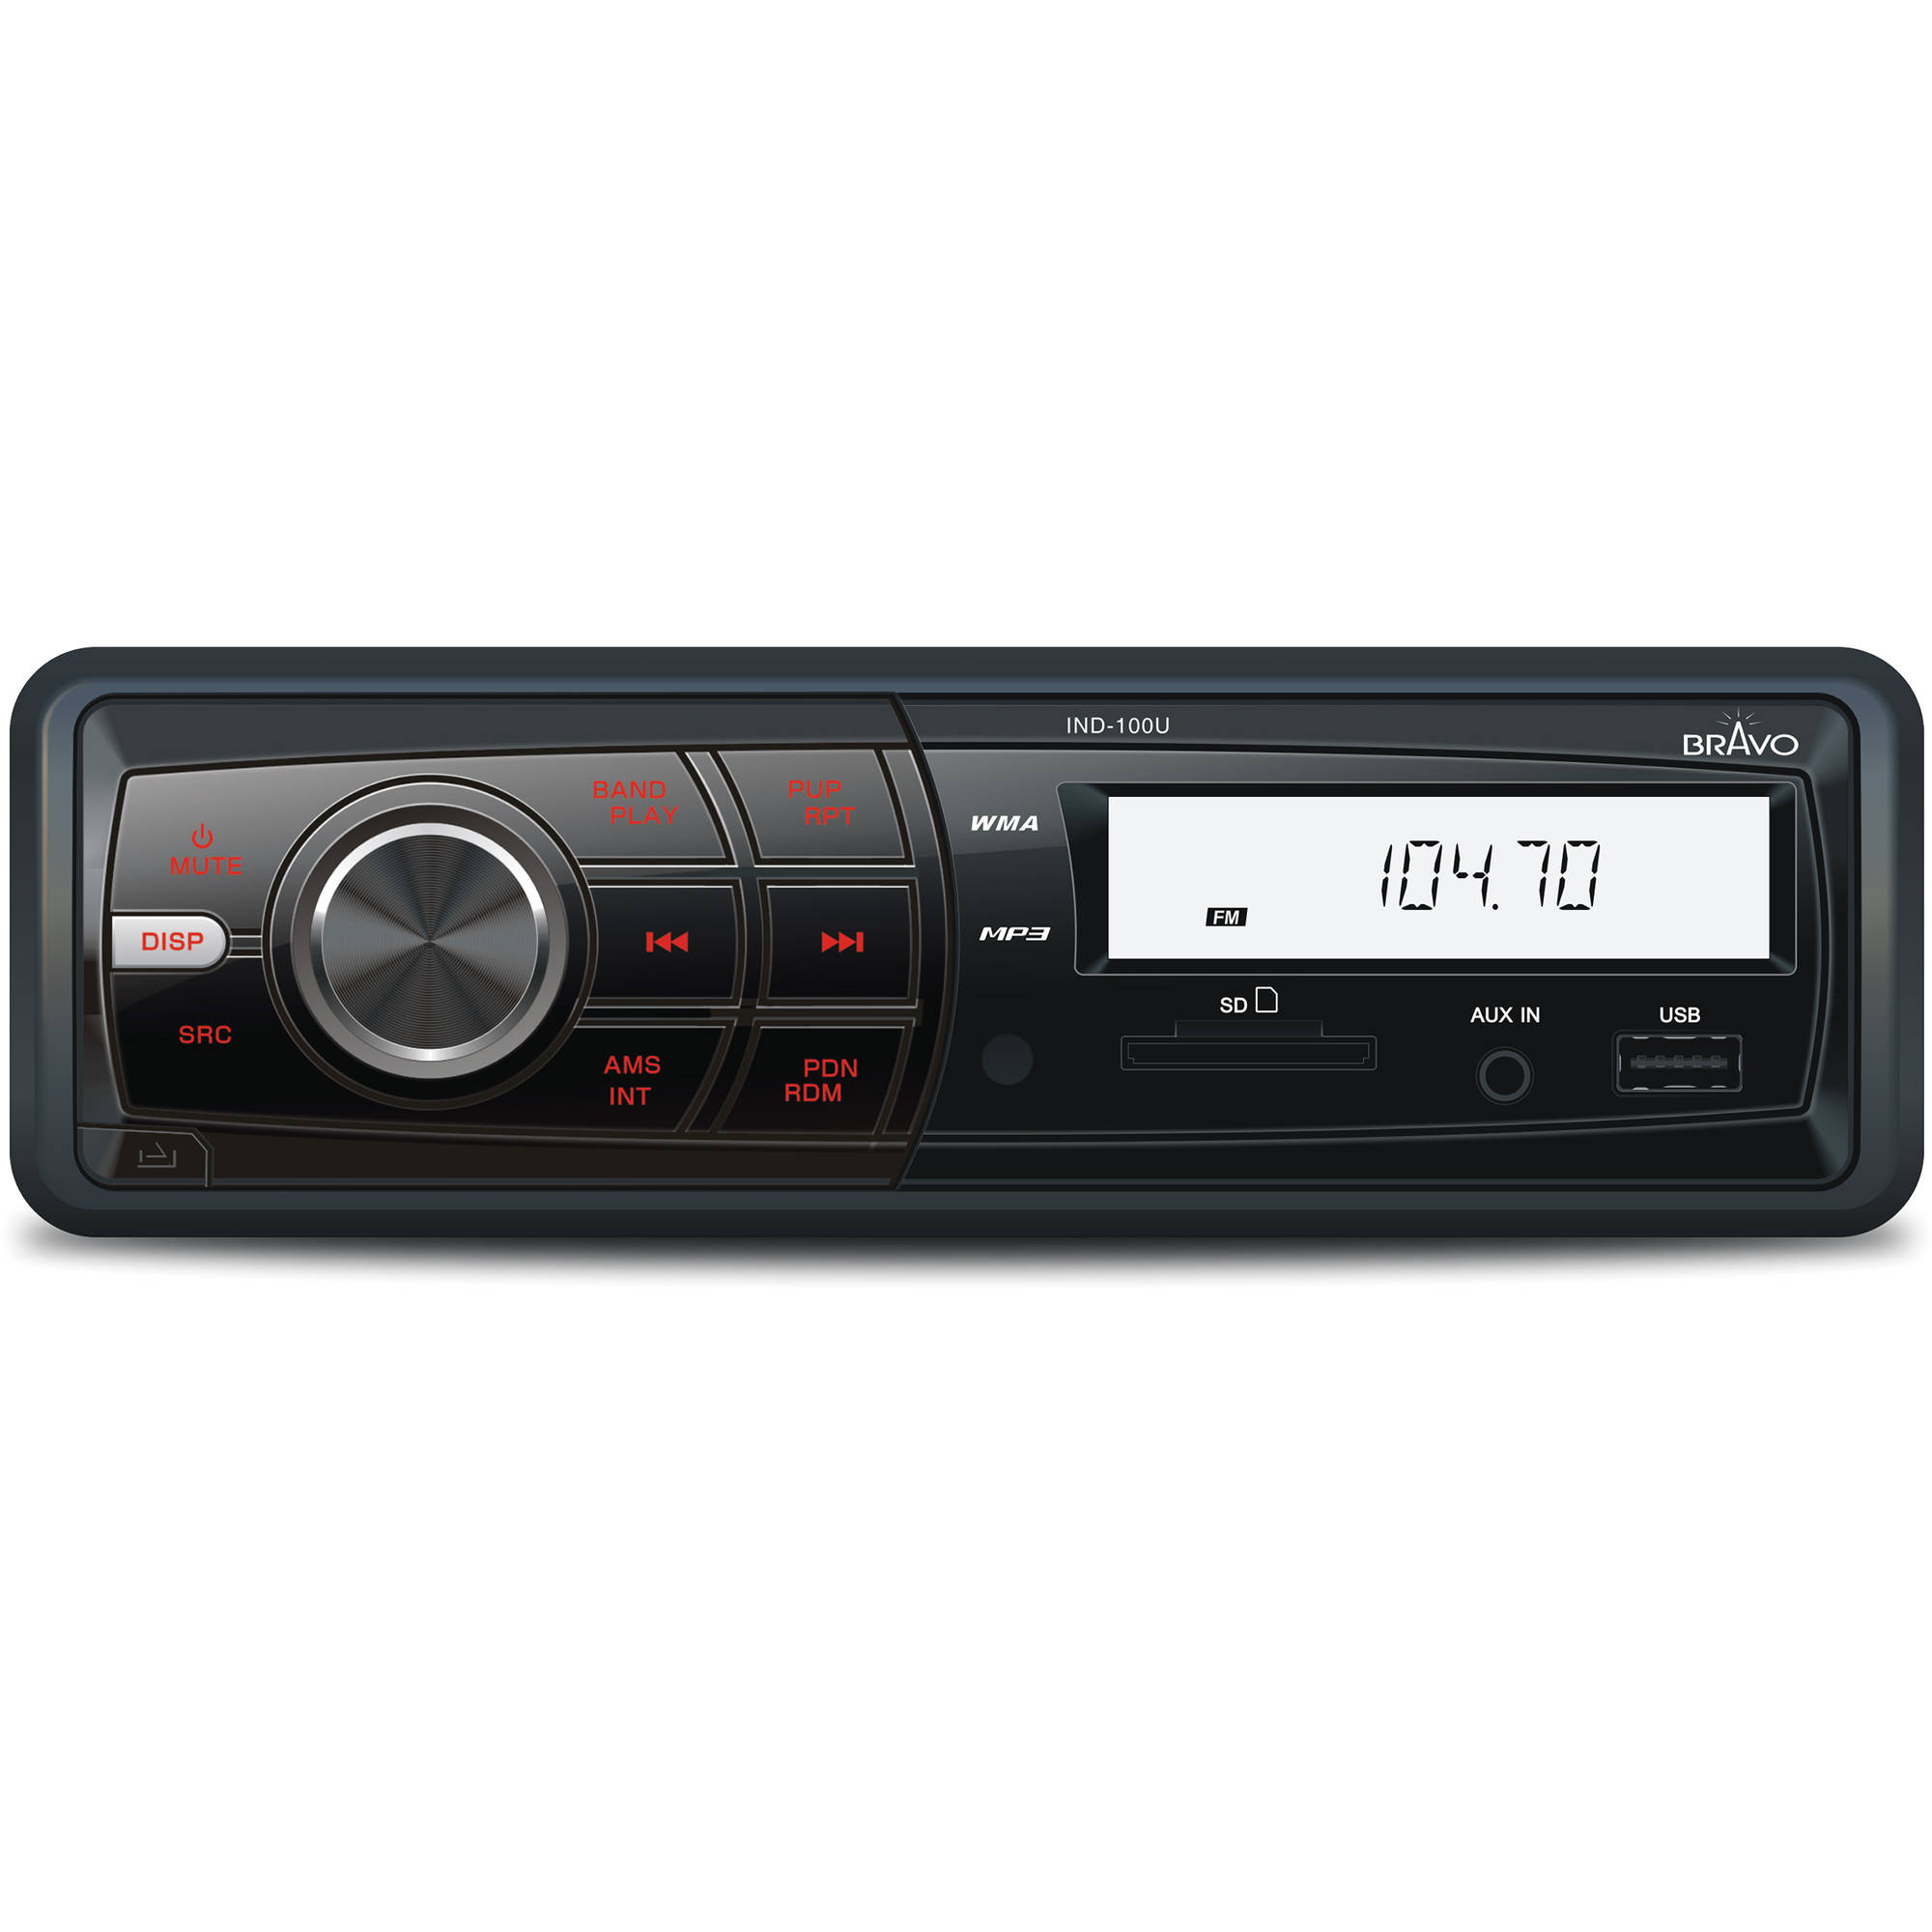 Bravo View IND-100U - In-Dash Digital Media Receiver with USB/AUX-IN (no CD/DVD)